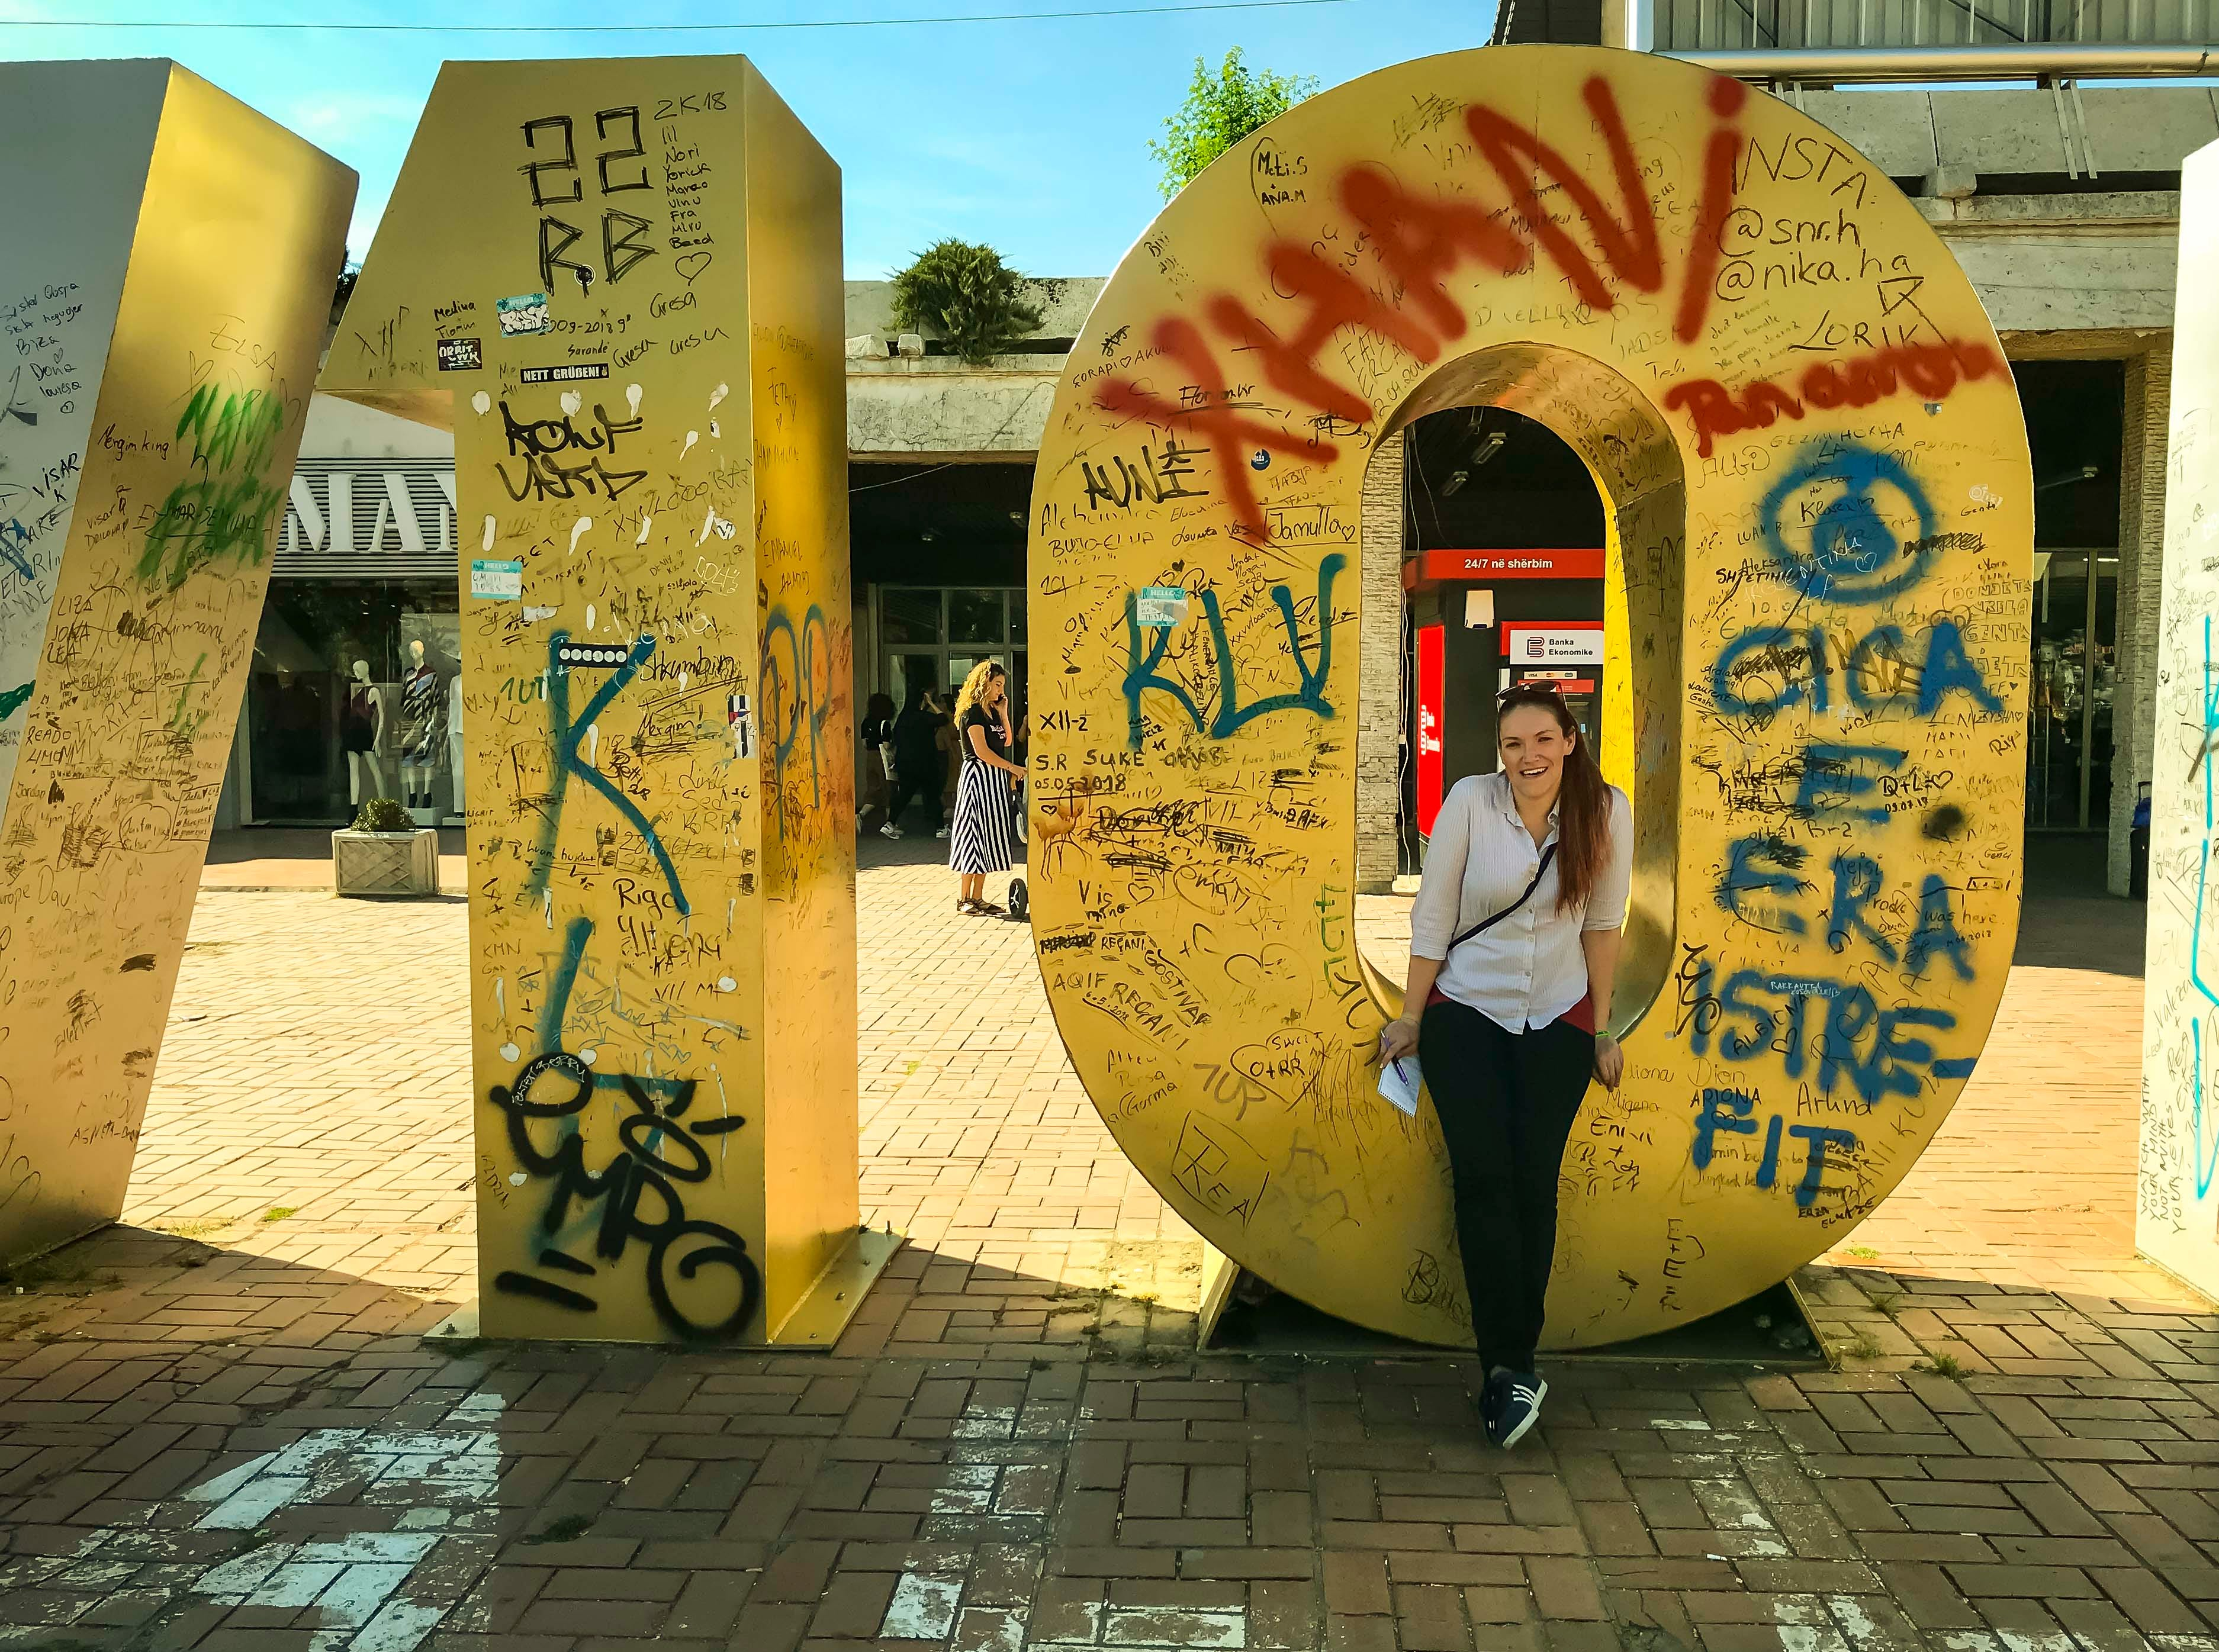 """Courtney Crowder, the Register's Iowa Columnist, in front of the Newborn Monument in Pristina, Kosovo, Tuesday, Sept. 18, 2018. The monument was placed in Feb. 2008 after the Republic of Kosovo formally declared its independence from Serbia. The """"B"""" & """"O"""" have been replaced this year with """"10"""" to mark the tenth anniversary of Kosovo independence."""